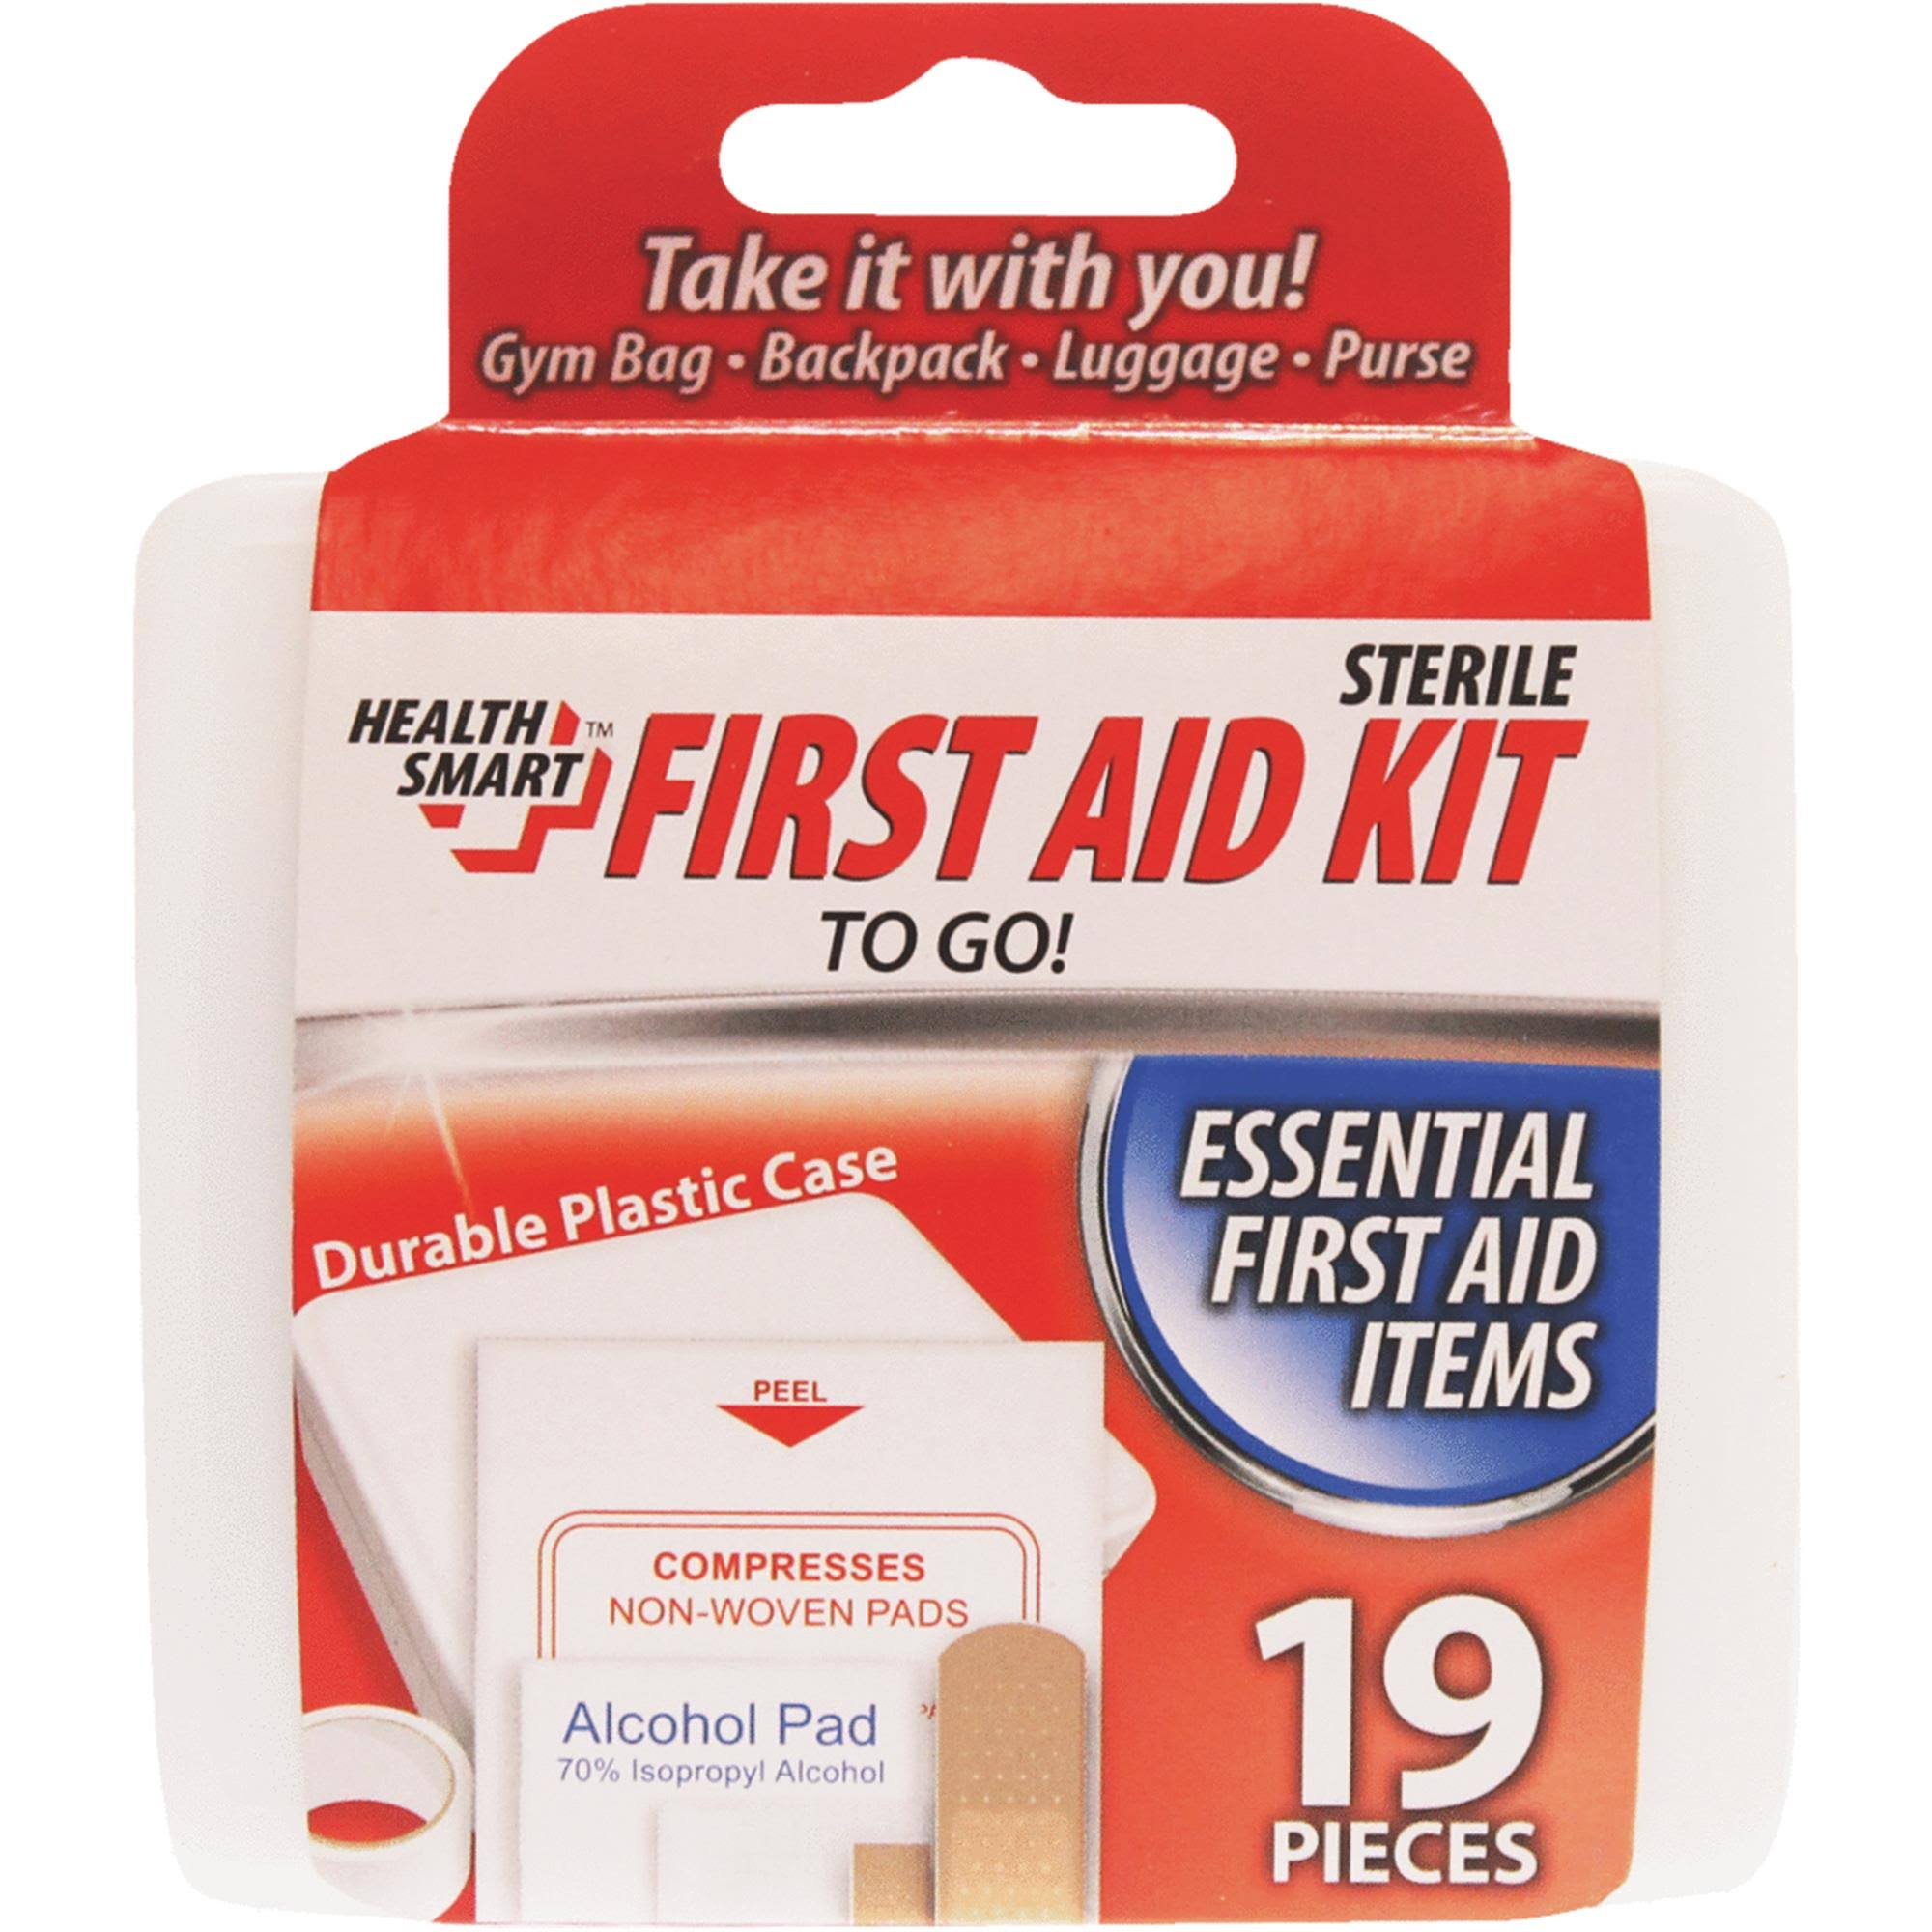 Health Smart First Aid Kit - 19pcs